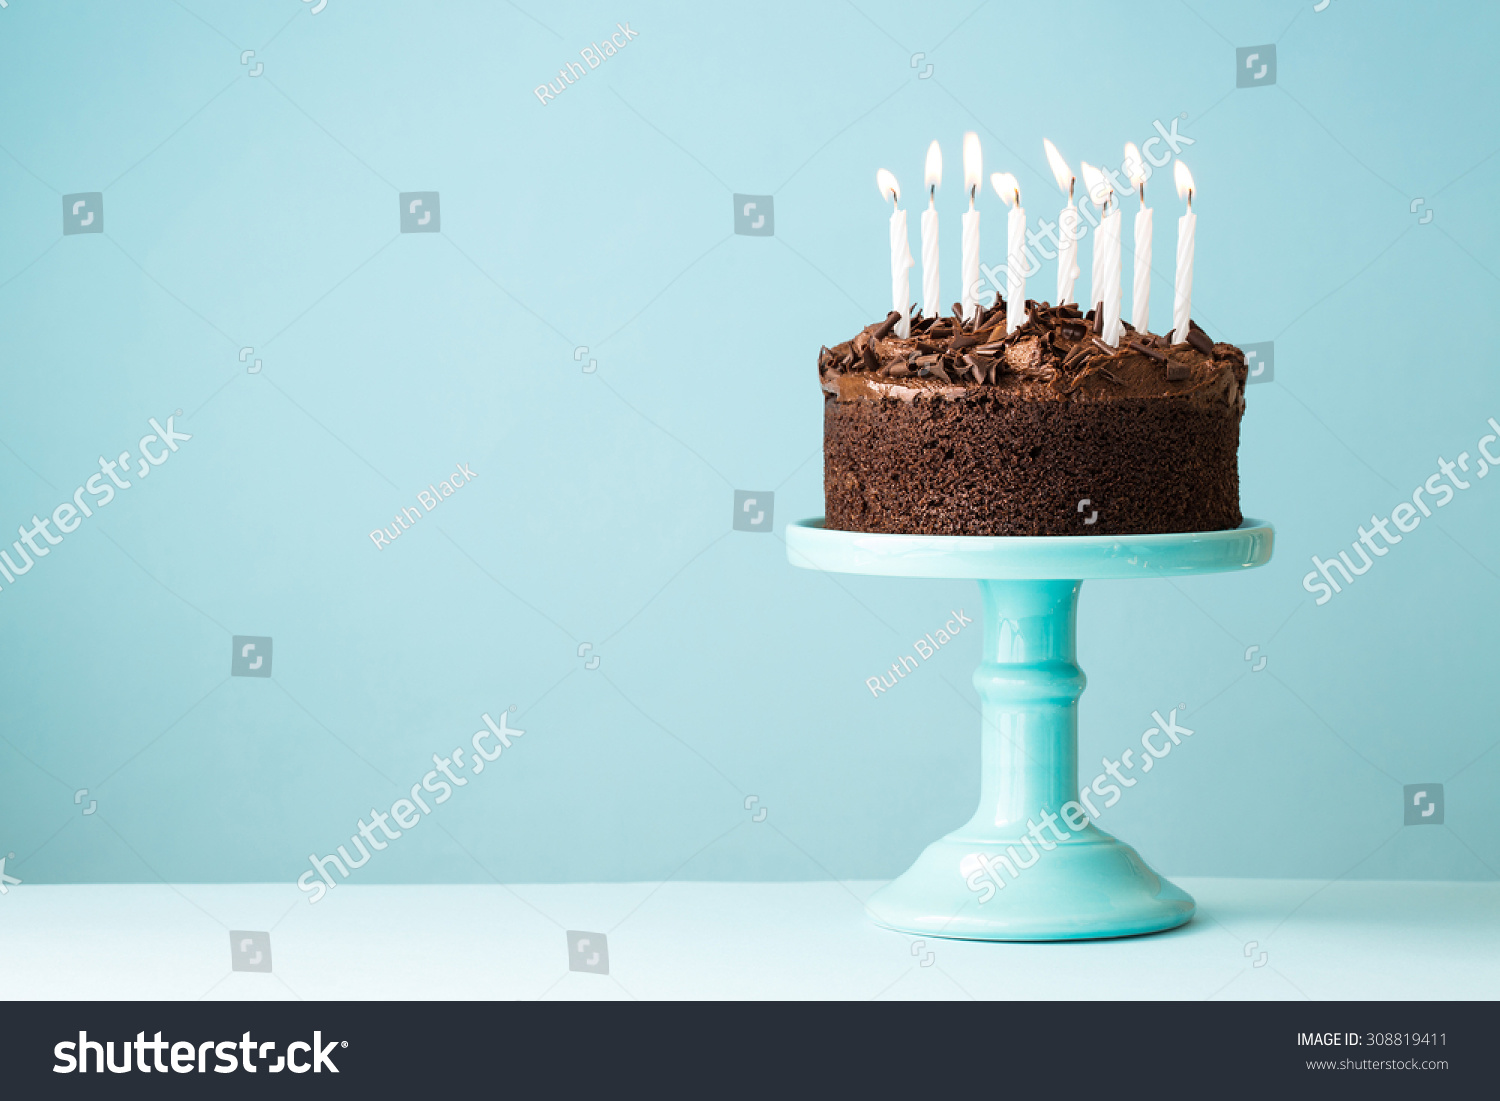 Chocolate Cake Images Birthday With Candles : Chocolate Birthday Cake Candles Stock Photo 308819411 ...